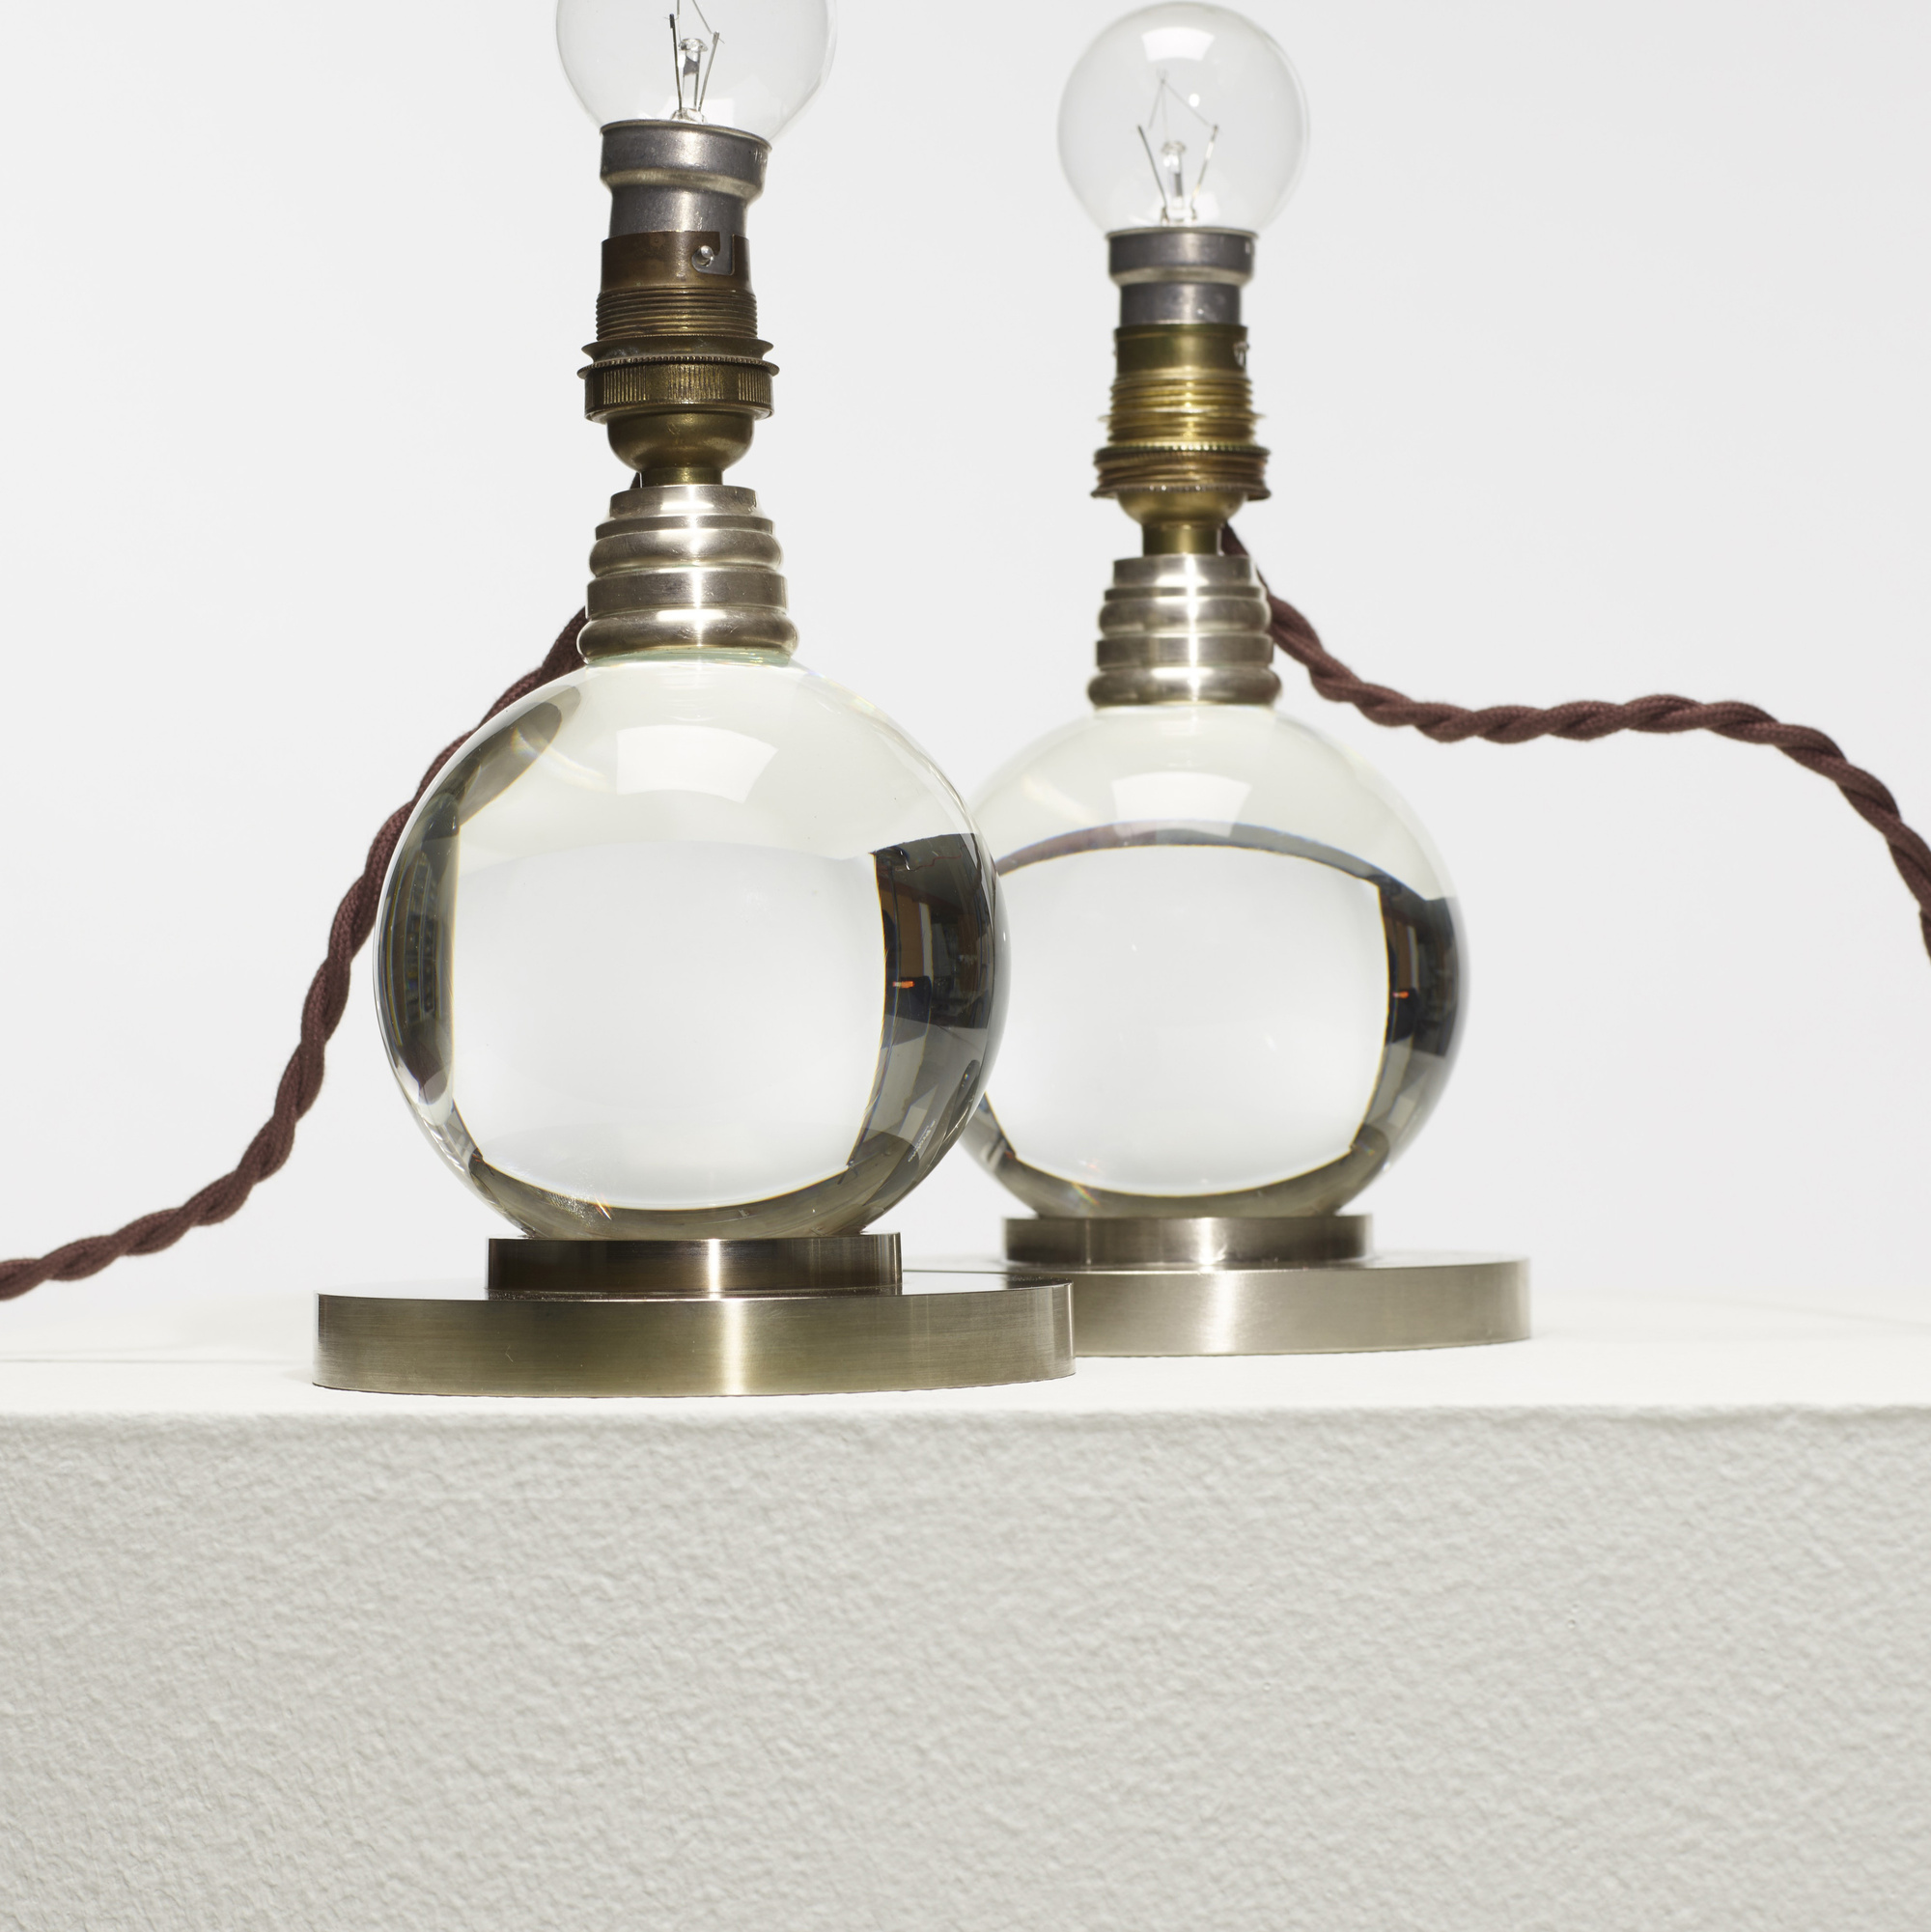 300: Jacques Adnet / table lamps model 7706, pair (2 of 2)